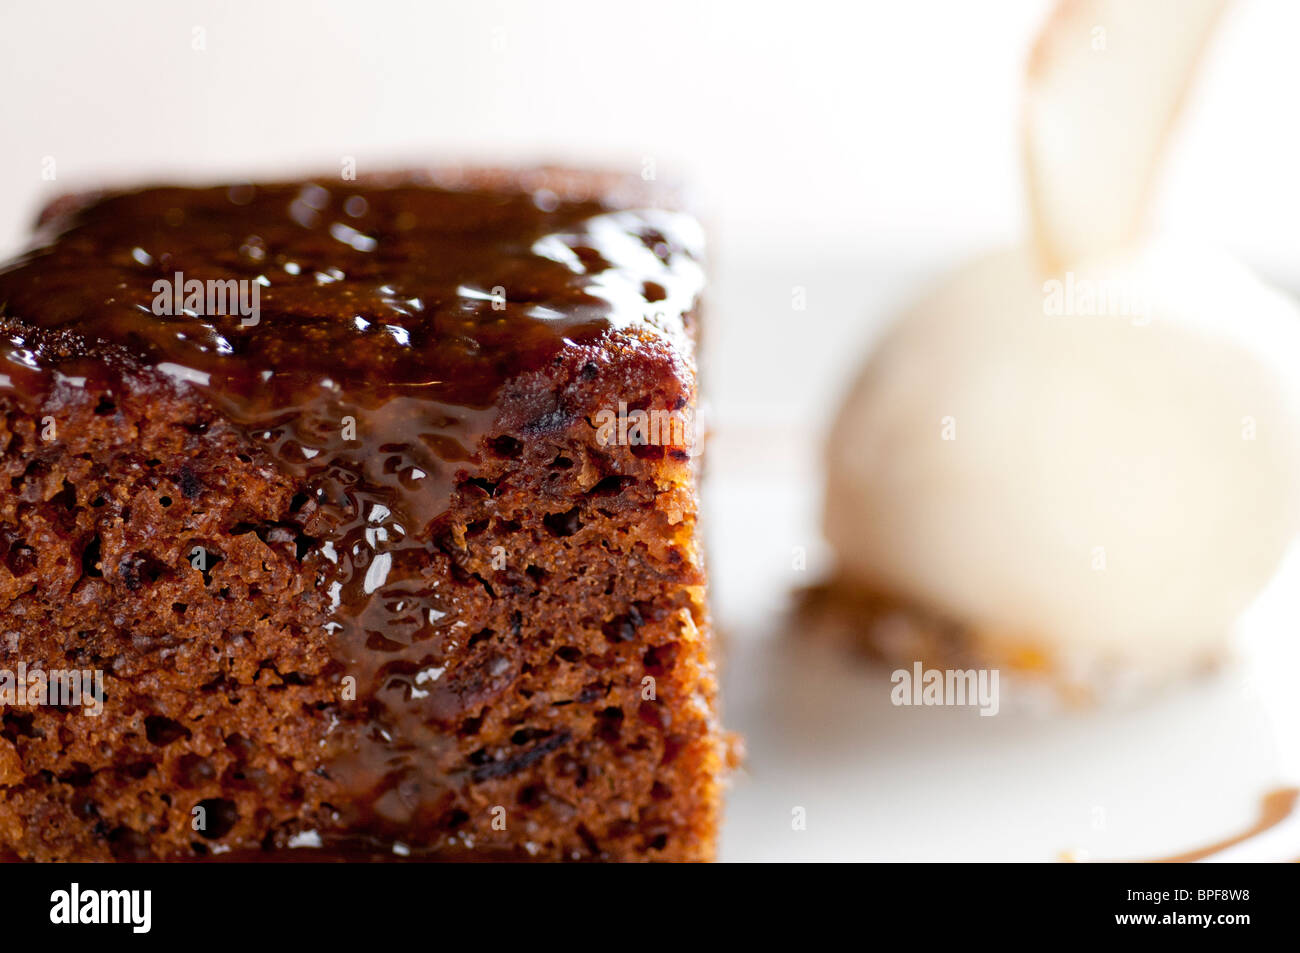 Traditional English pub food - Sticky toffee pudding - Stock Image